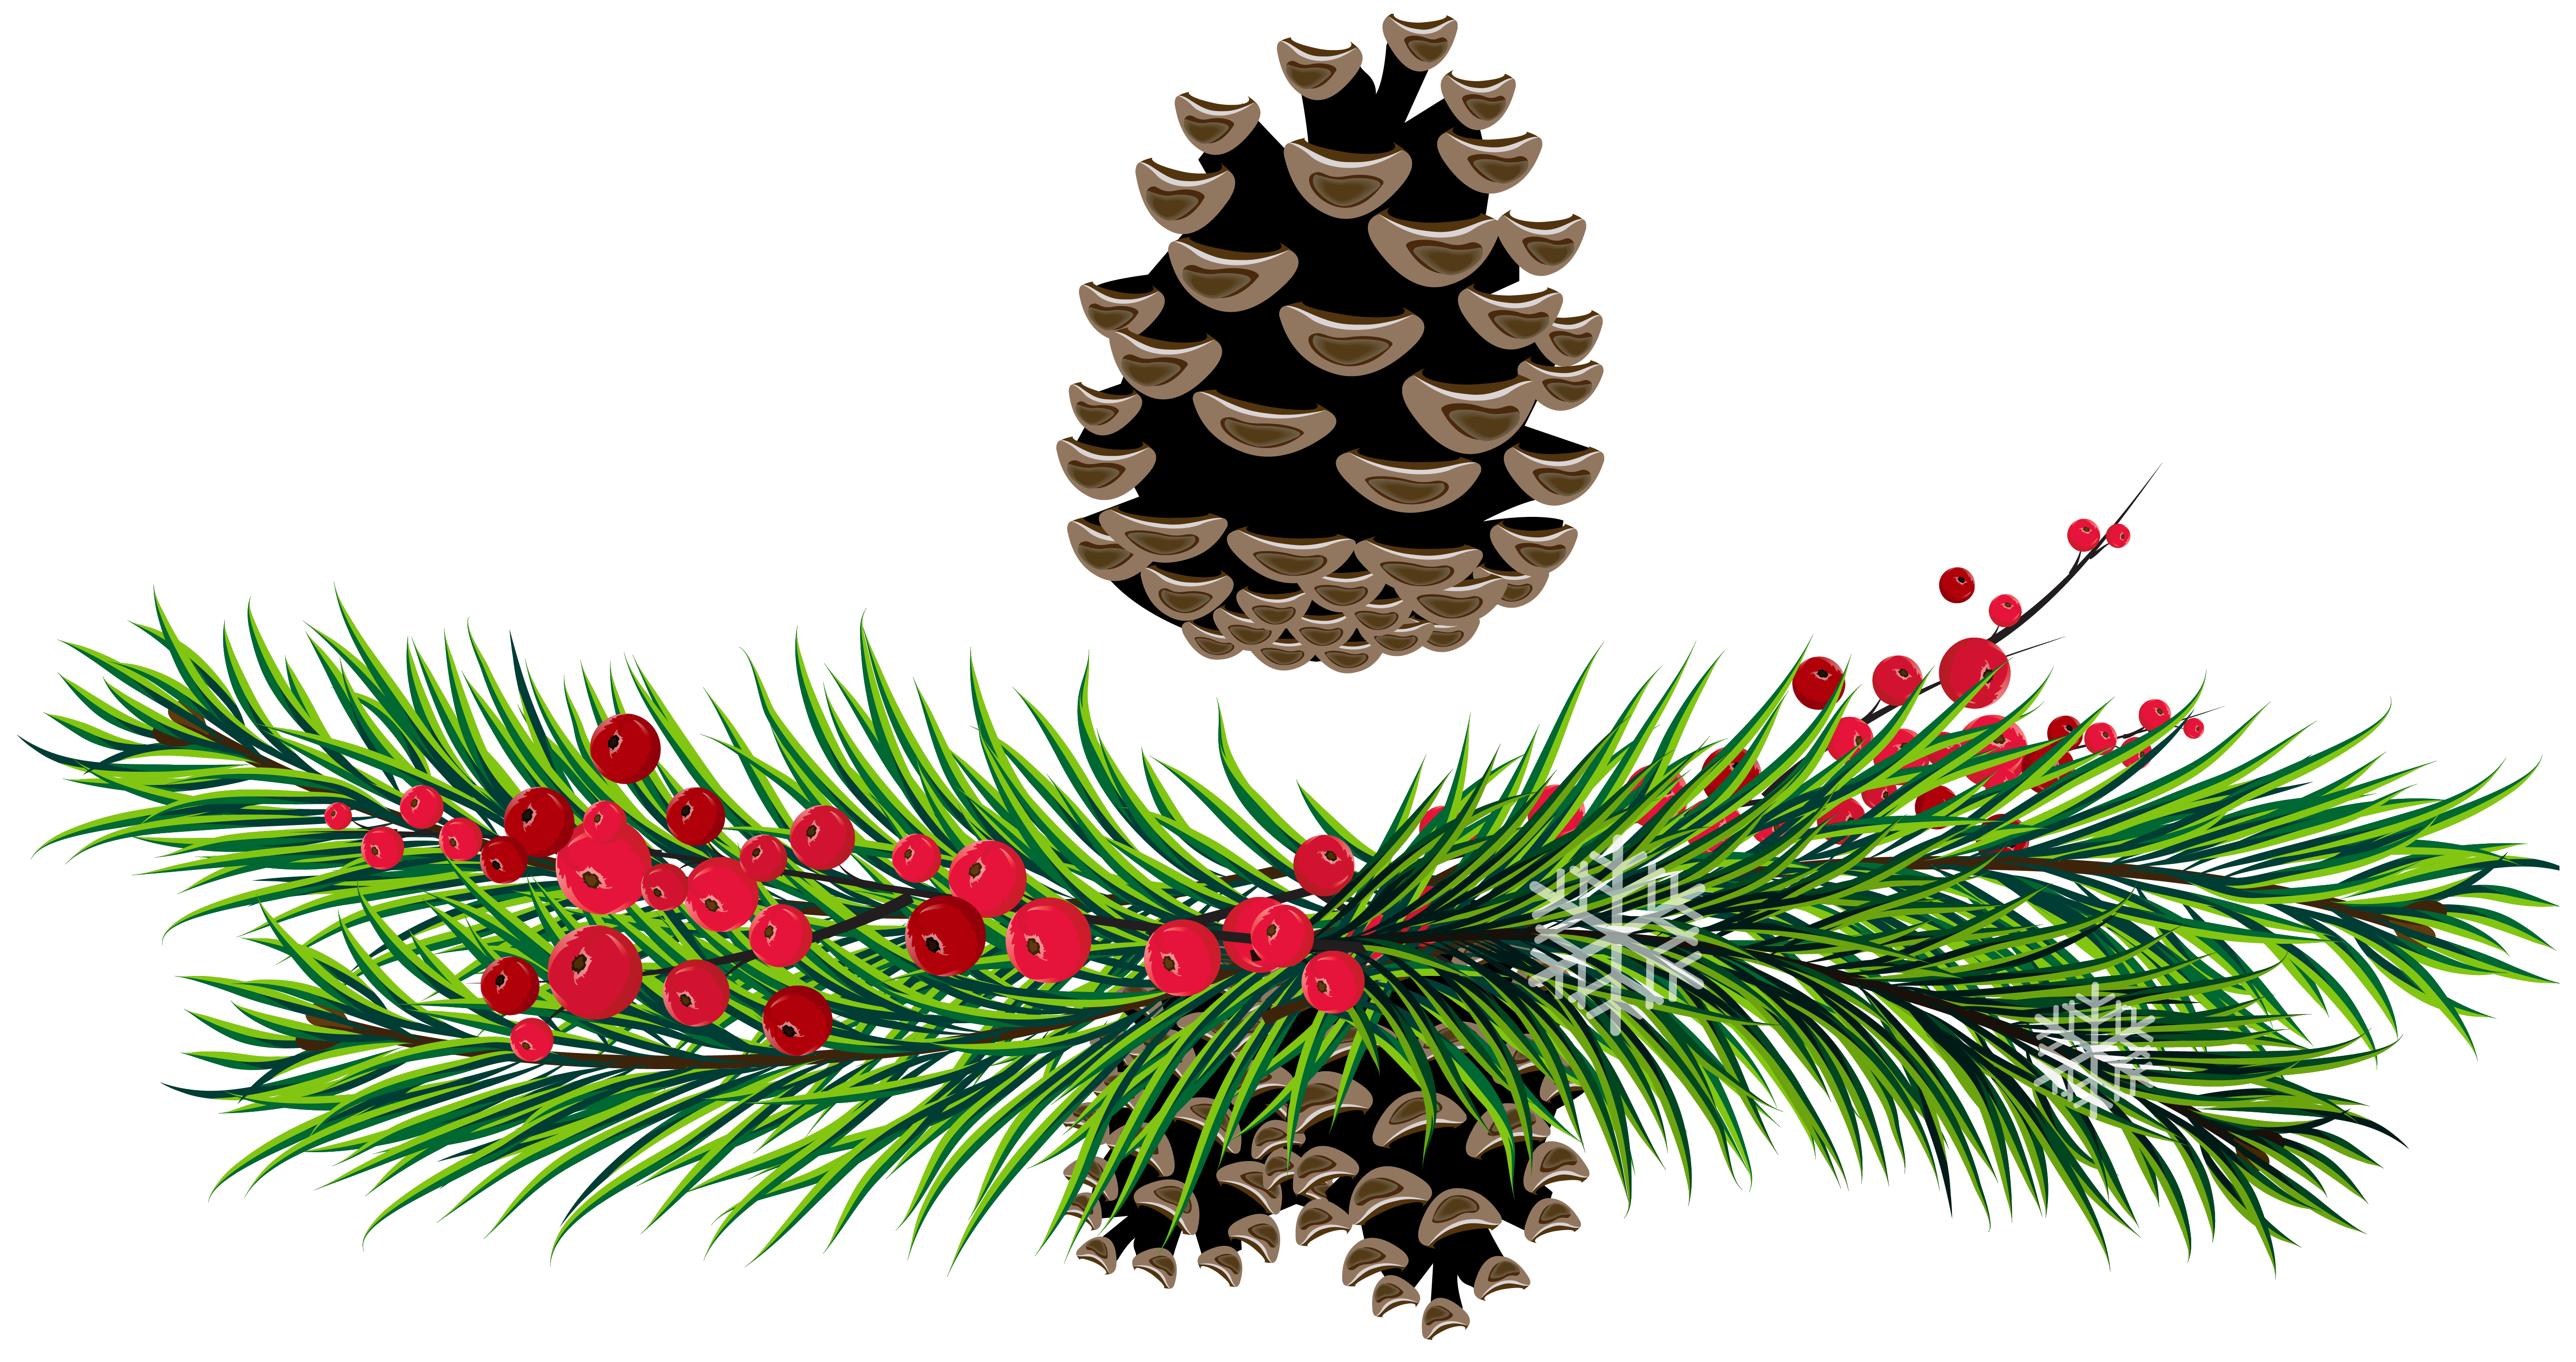 Christmas greenery png. Tree branch free cliparts